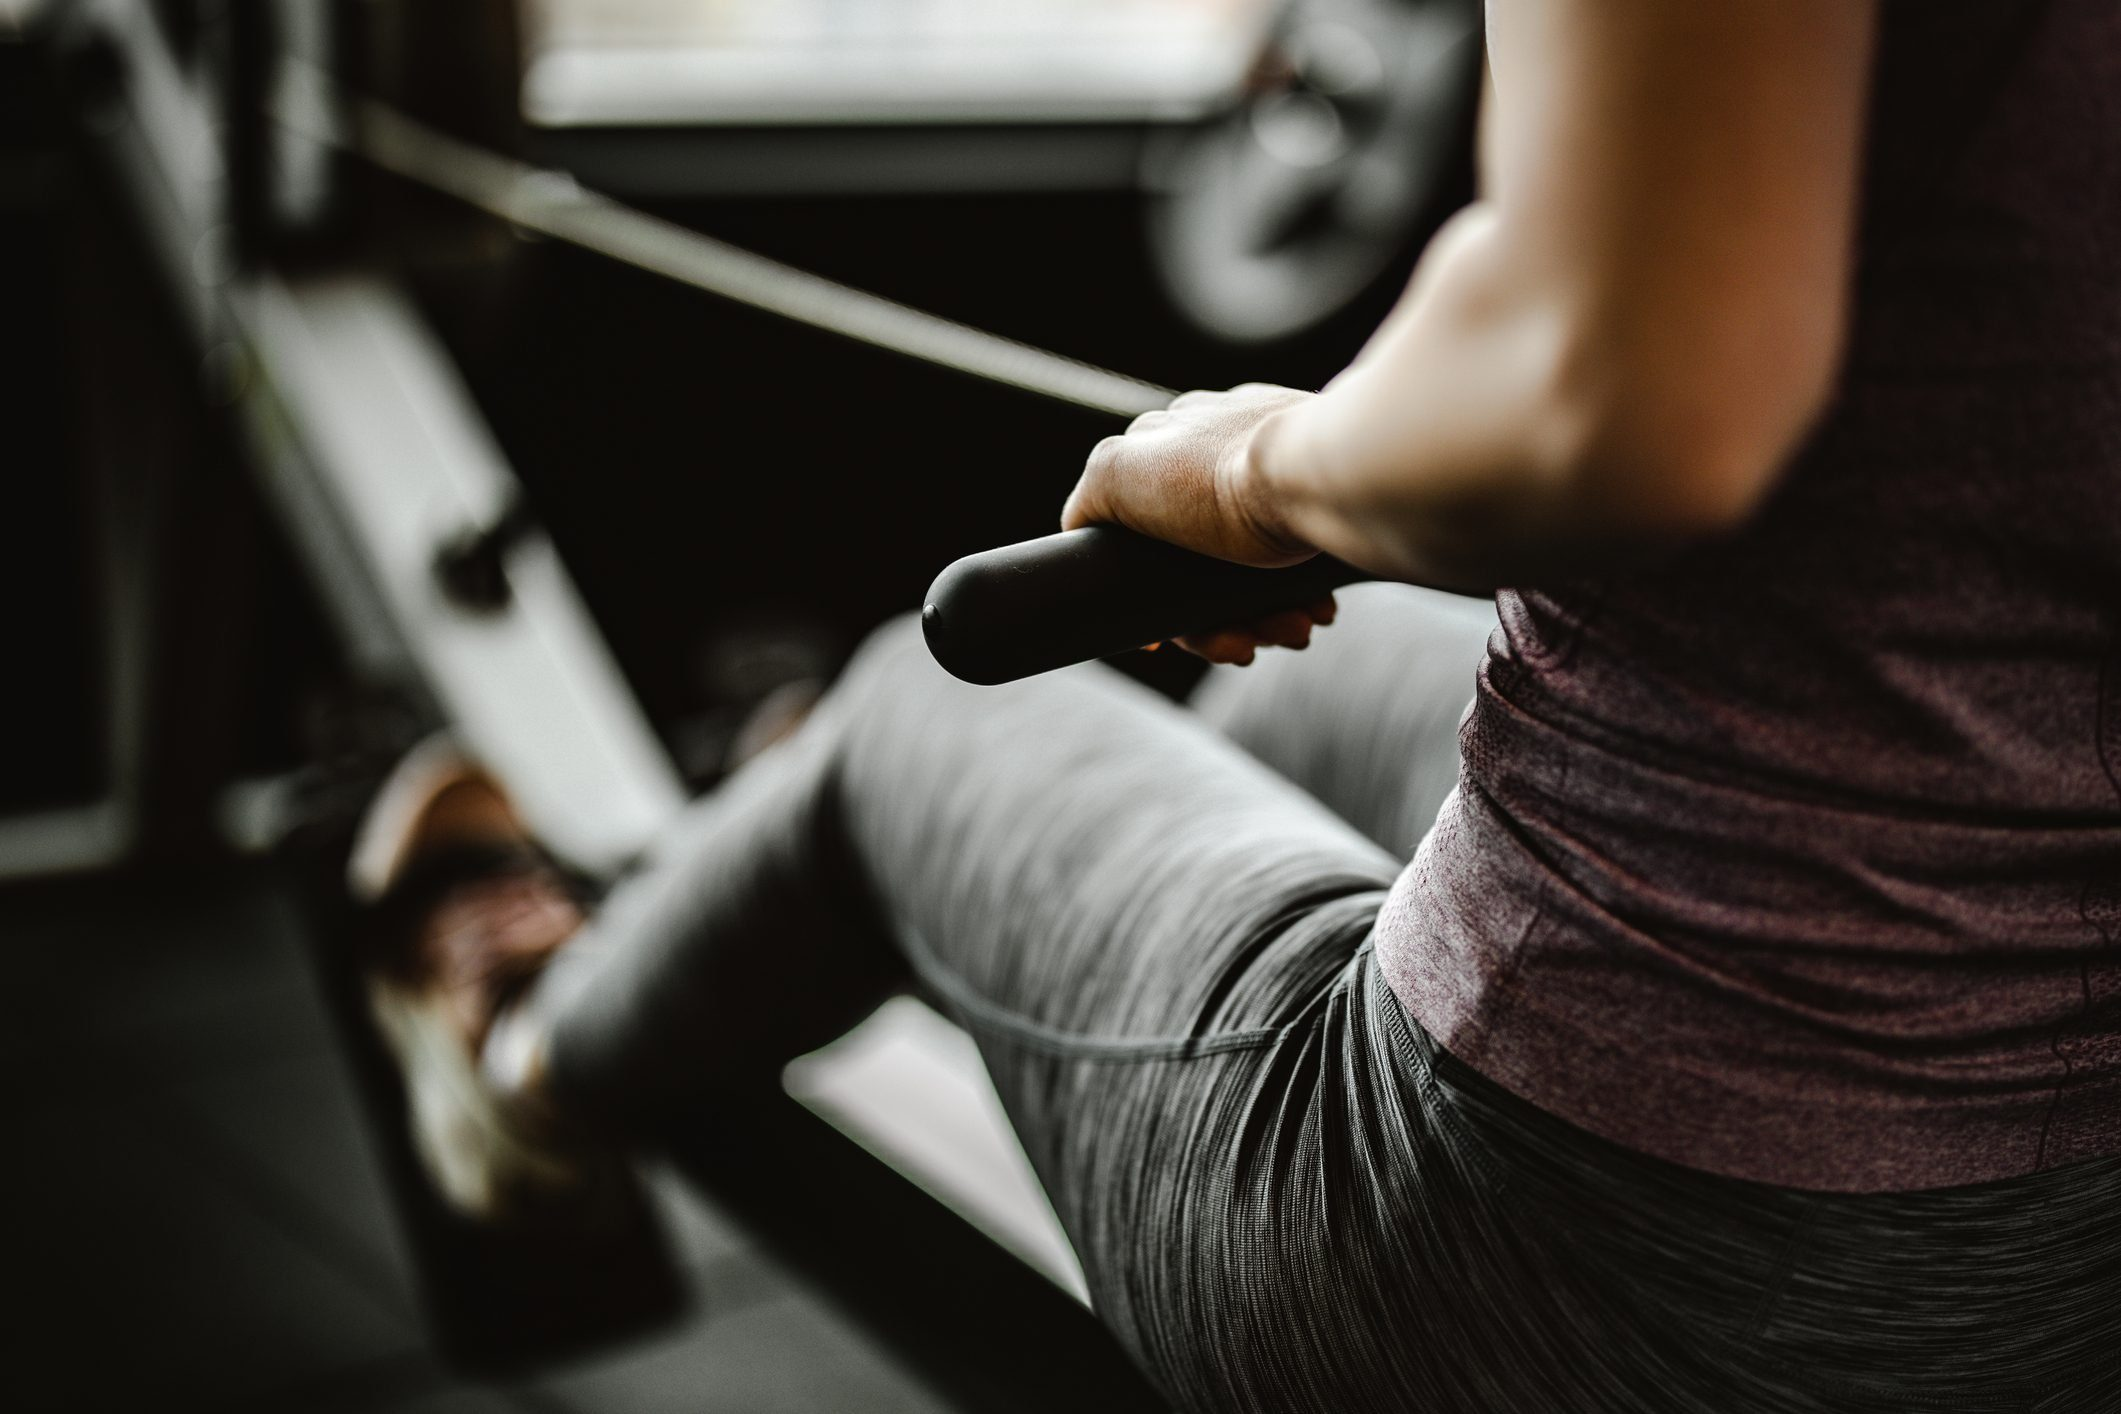 Close up of unrecognizable woman exercising on rowing machine in a gym.